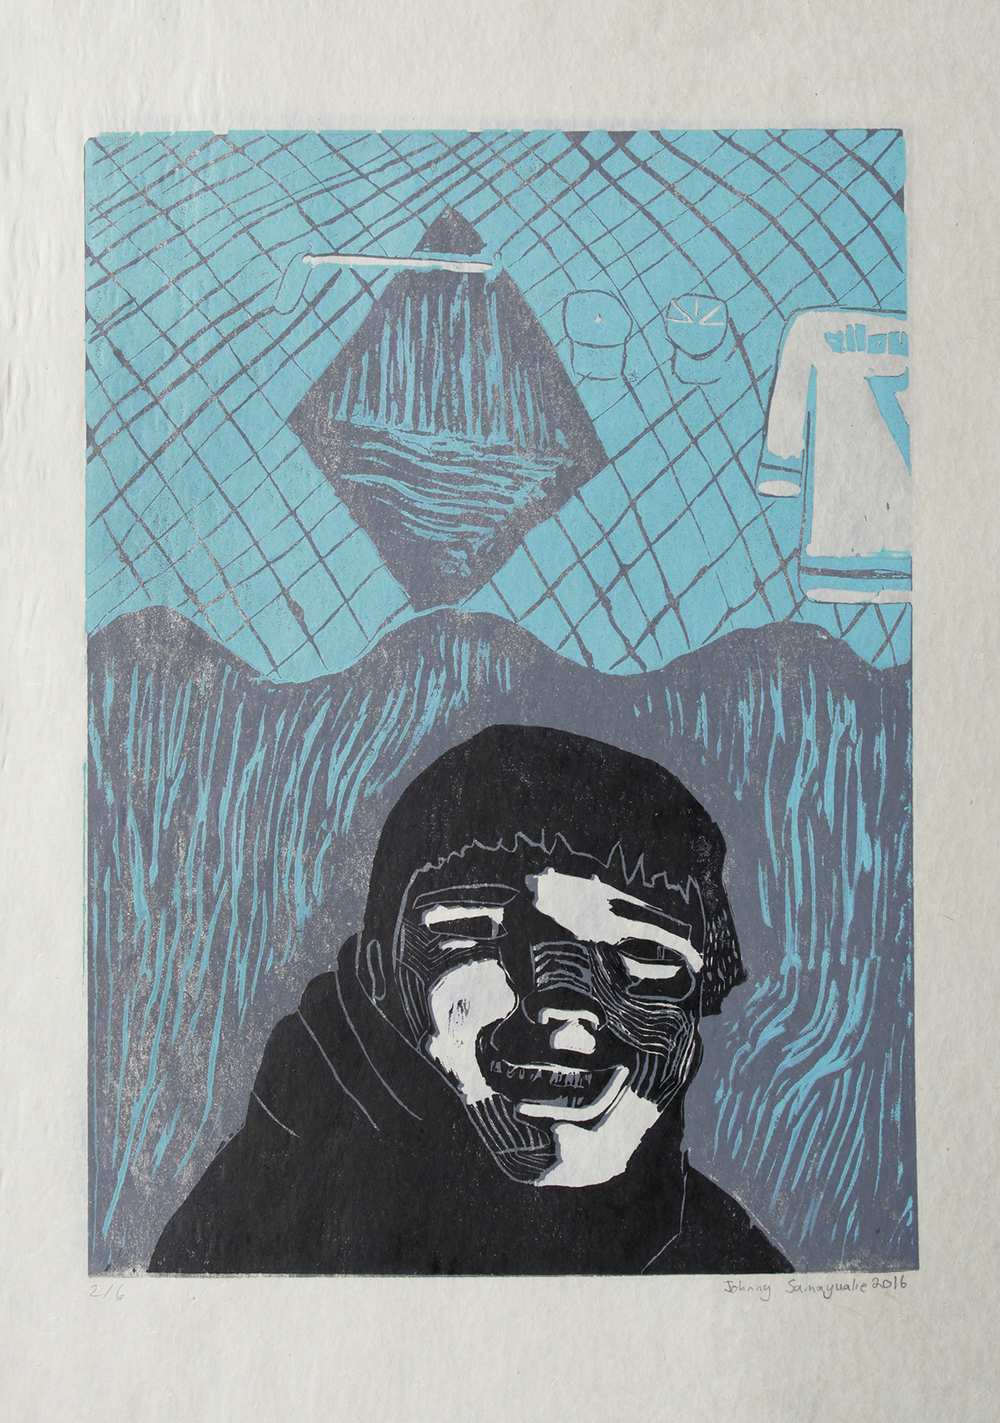 Uvanga: Self-Portrait   Johnny Samayualie  Two-Layer Linocut Print on Washi  15.5 x 21.5""